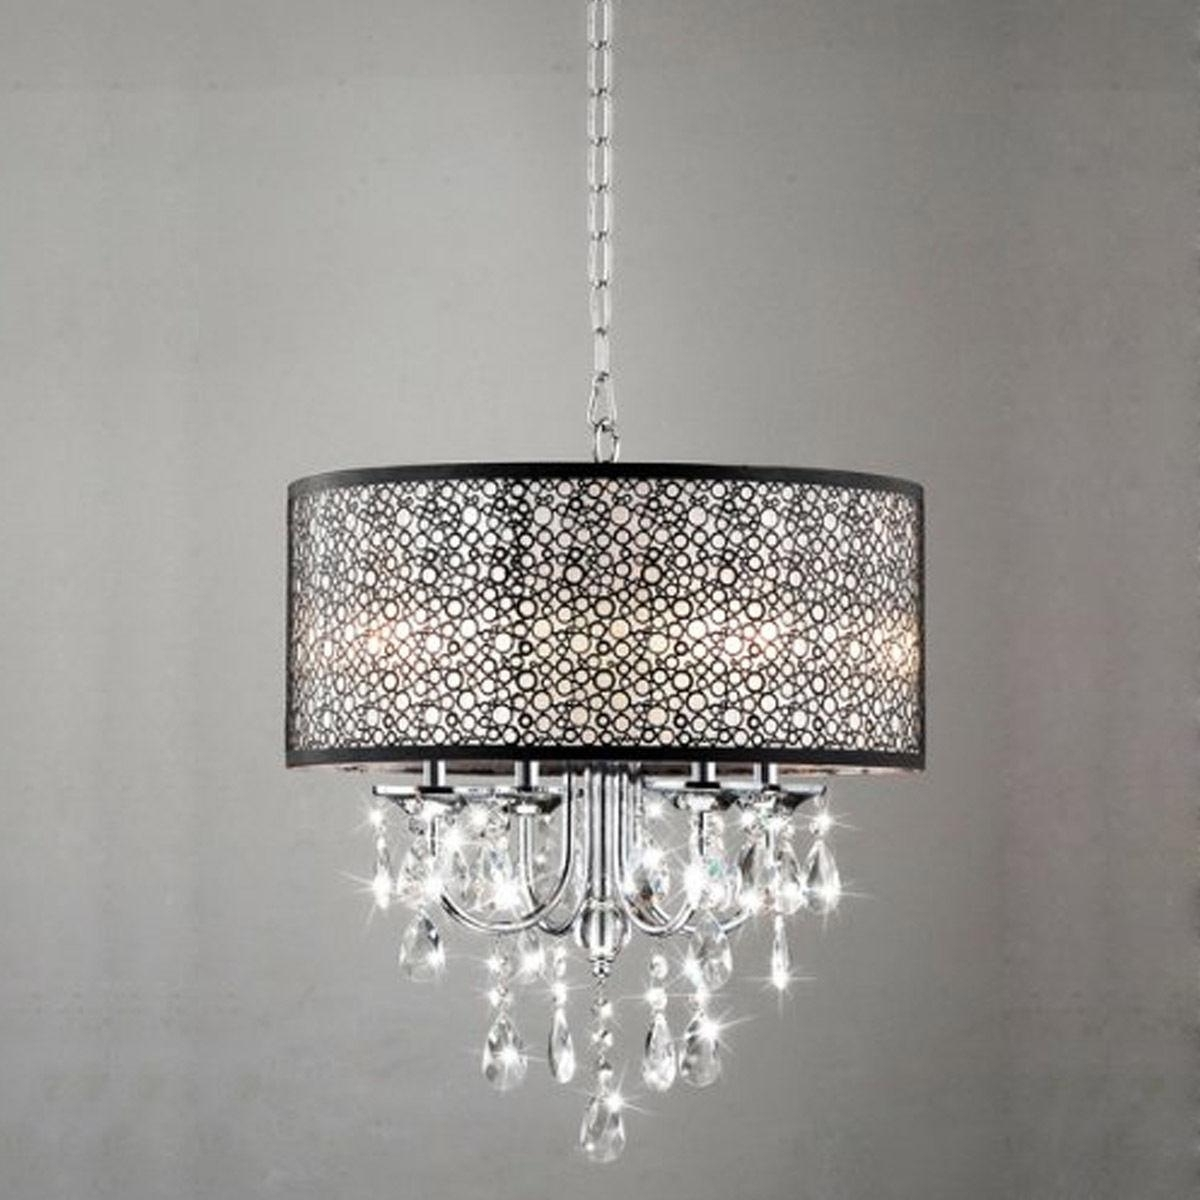 Modern 4 Light Crystal Chandelier Pendant Lamp Ceiling Fixture Home For Most Recently Released 4 Light Crystal Chandeliers (View 18 of 20)